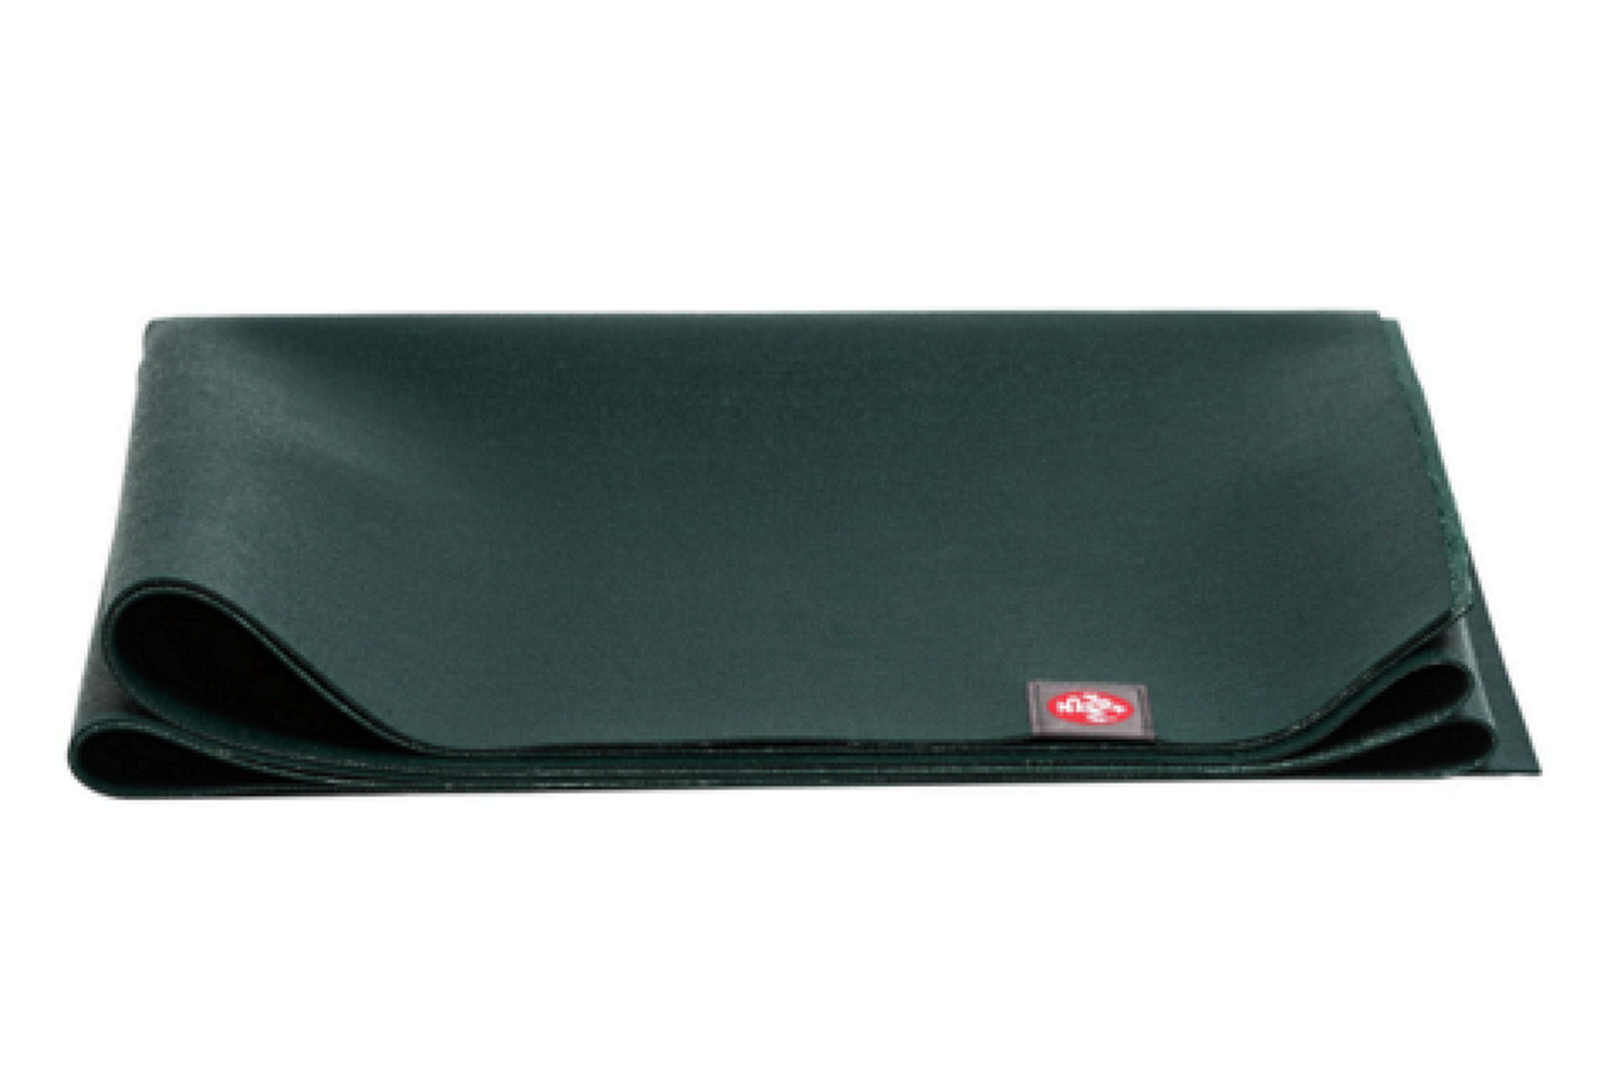 Manduka EKO Yoga and Pilates Mat, black